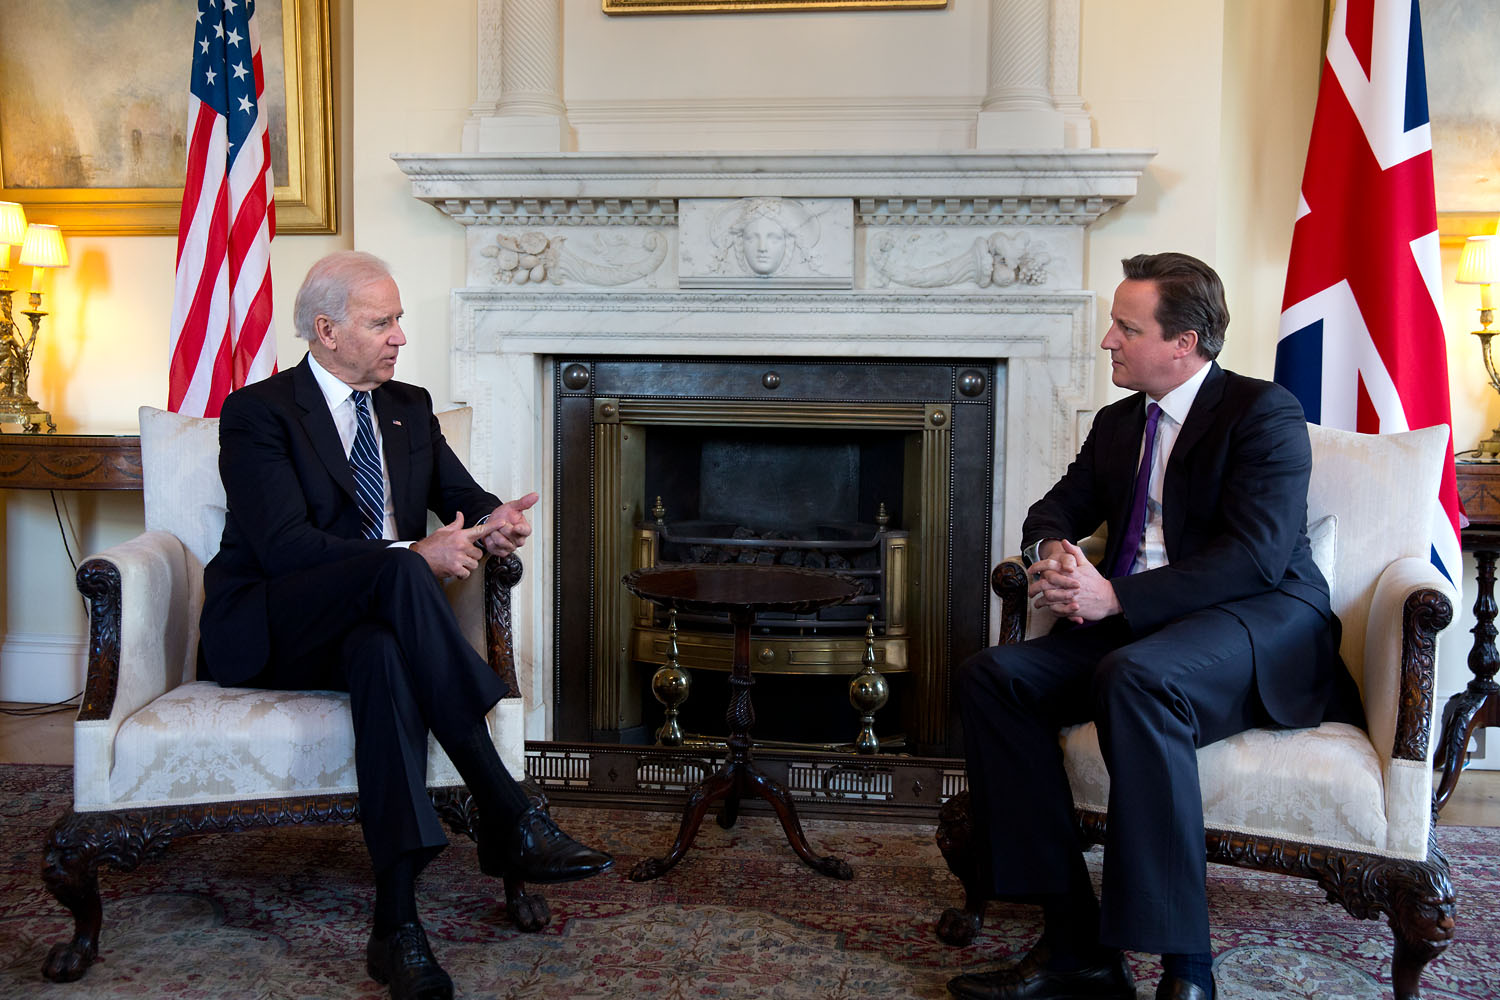 Vice President Joe Biden meets with British Prime Minister David Cameron